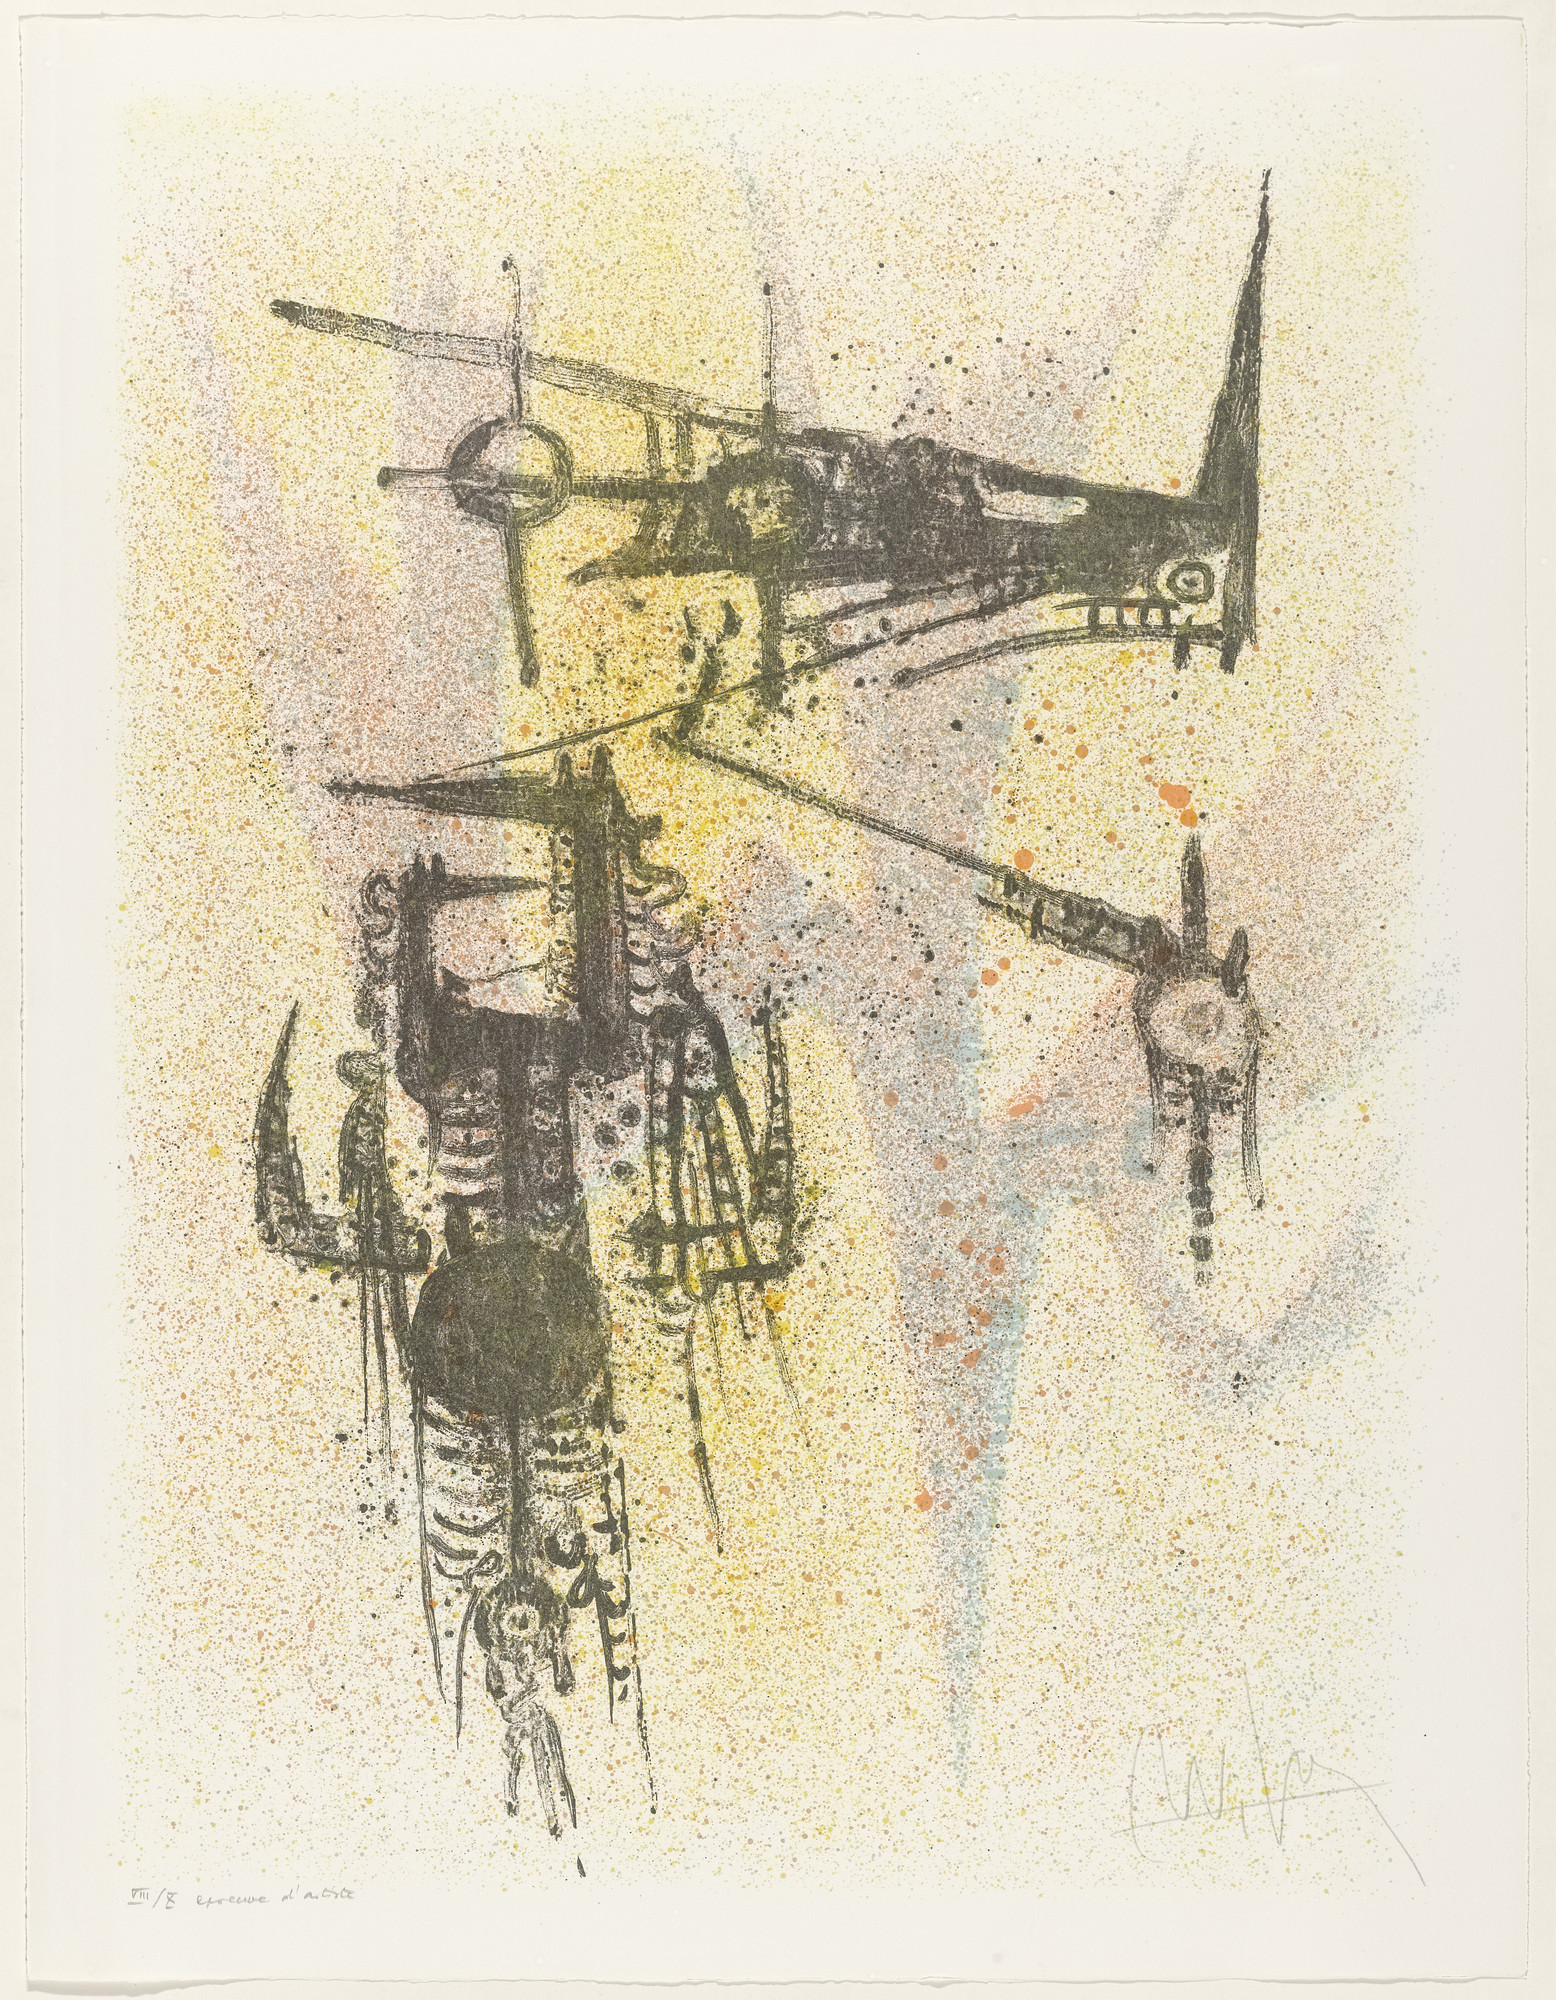 Wifredo Lam. Untitled from Flight. 1967, published 1971